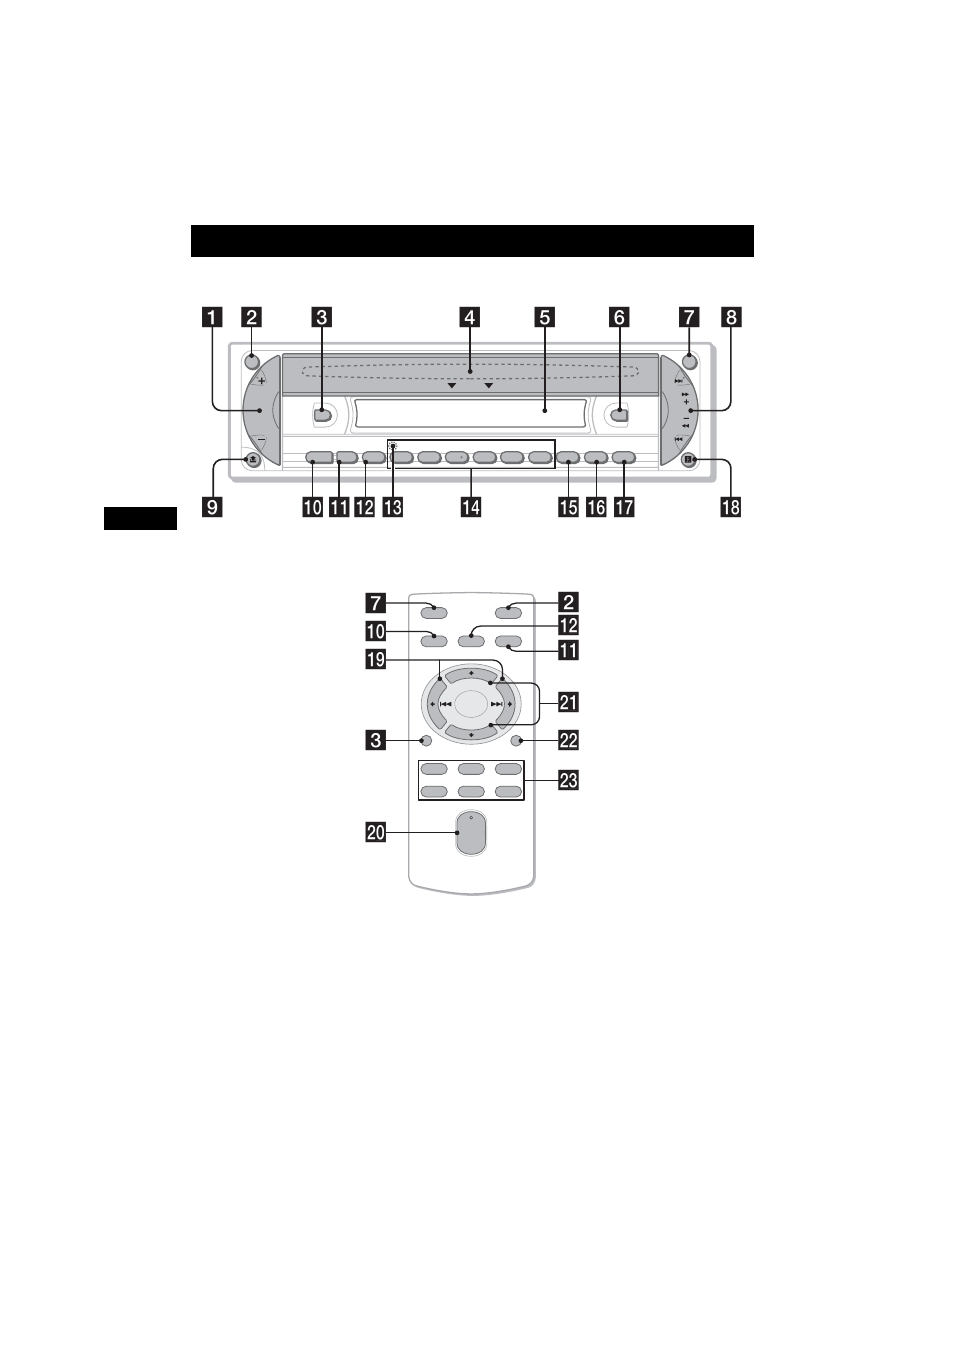 Sony Cdx R3350c Wiring Diagram And Schematics M60ui Hauptger T Kartenfernbenung Rm X151 R3350 User Manual Page